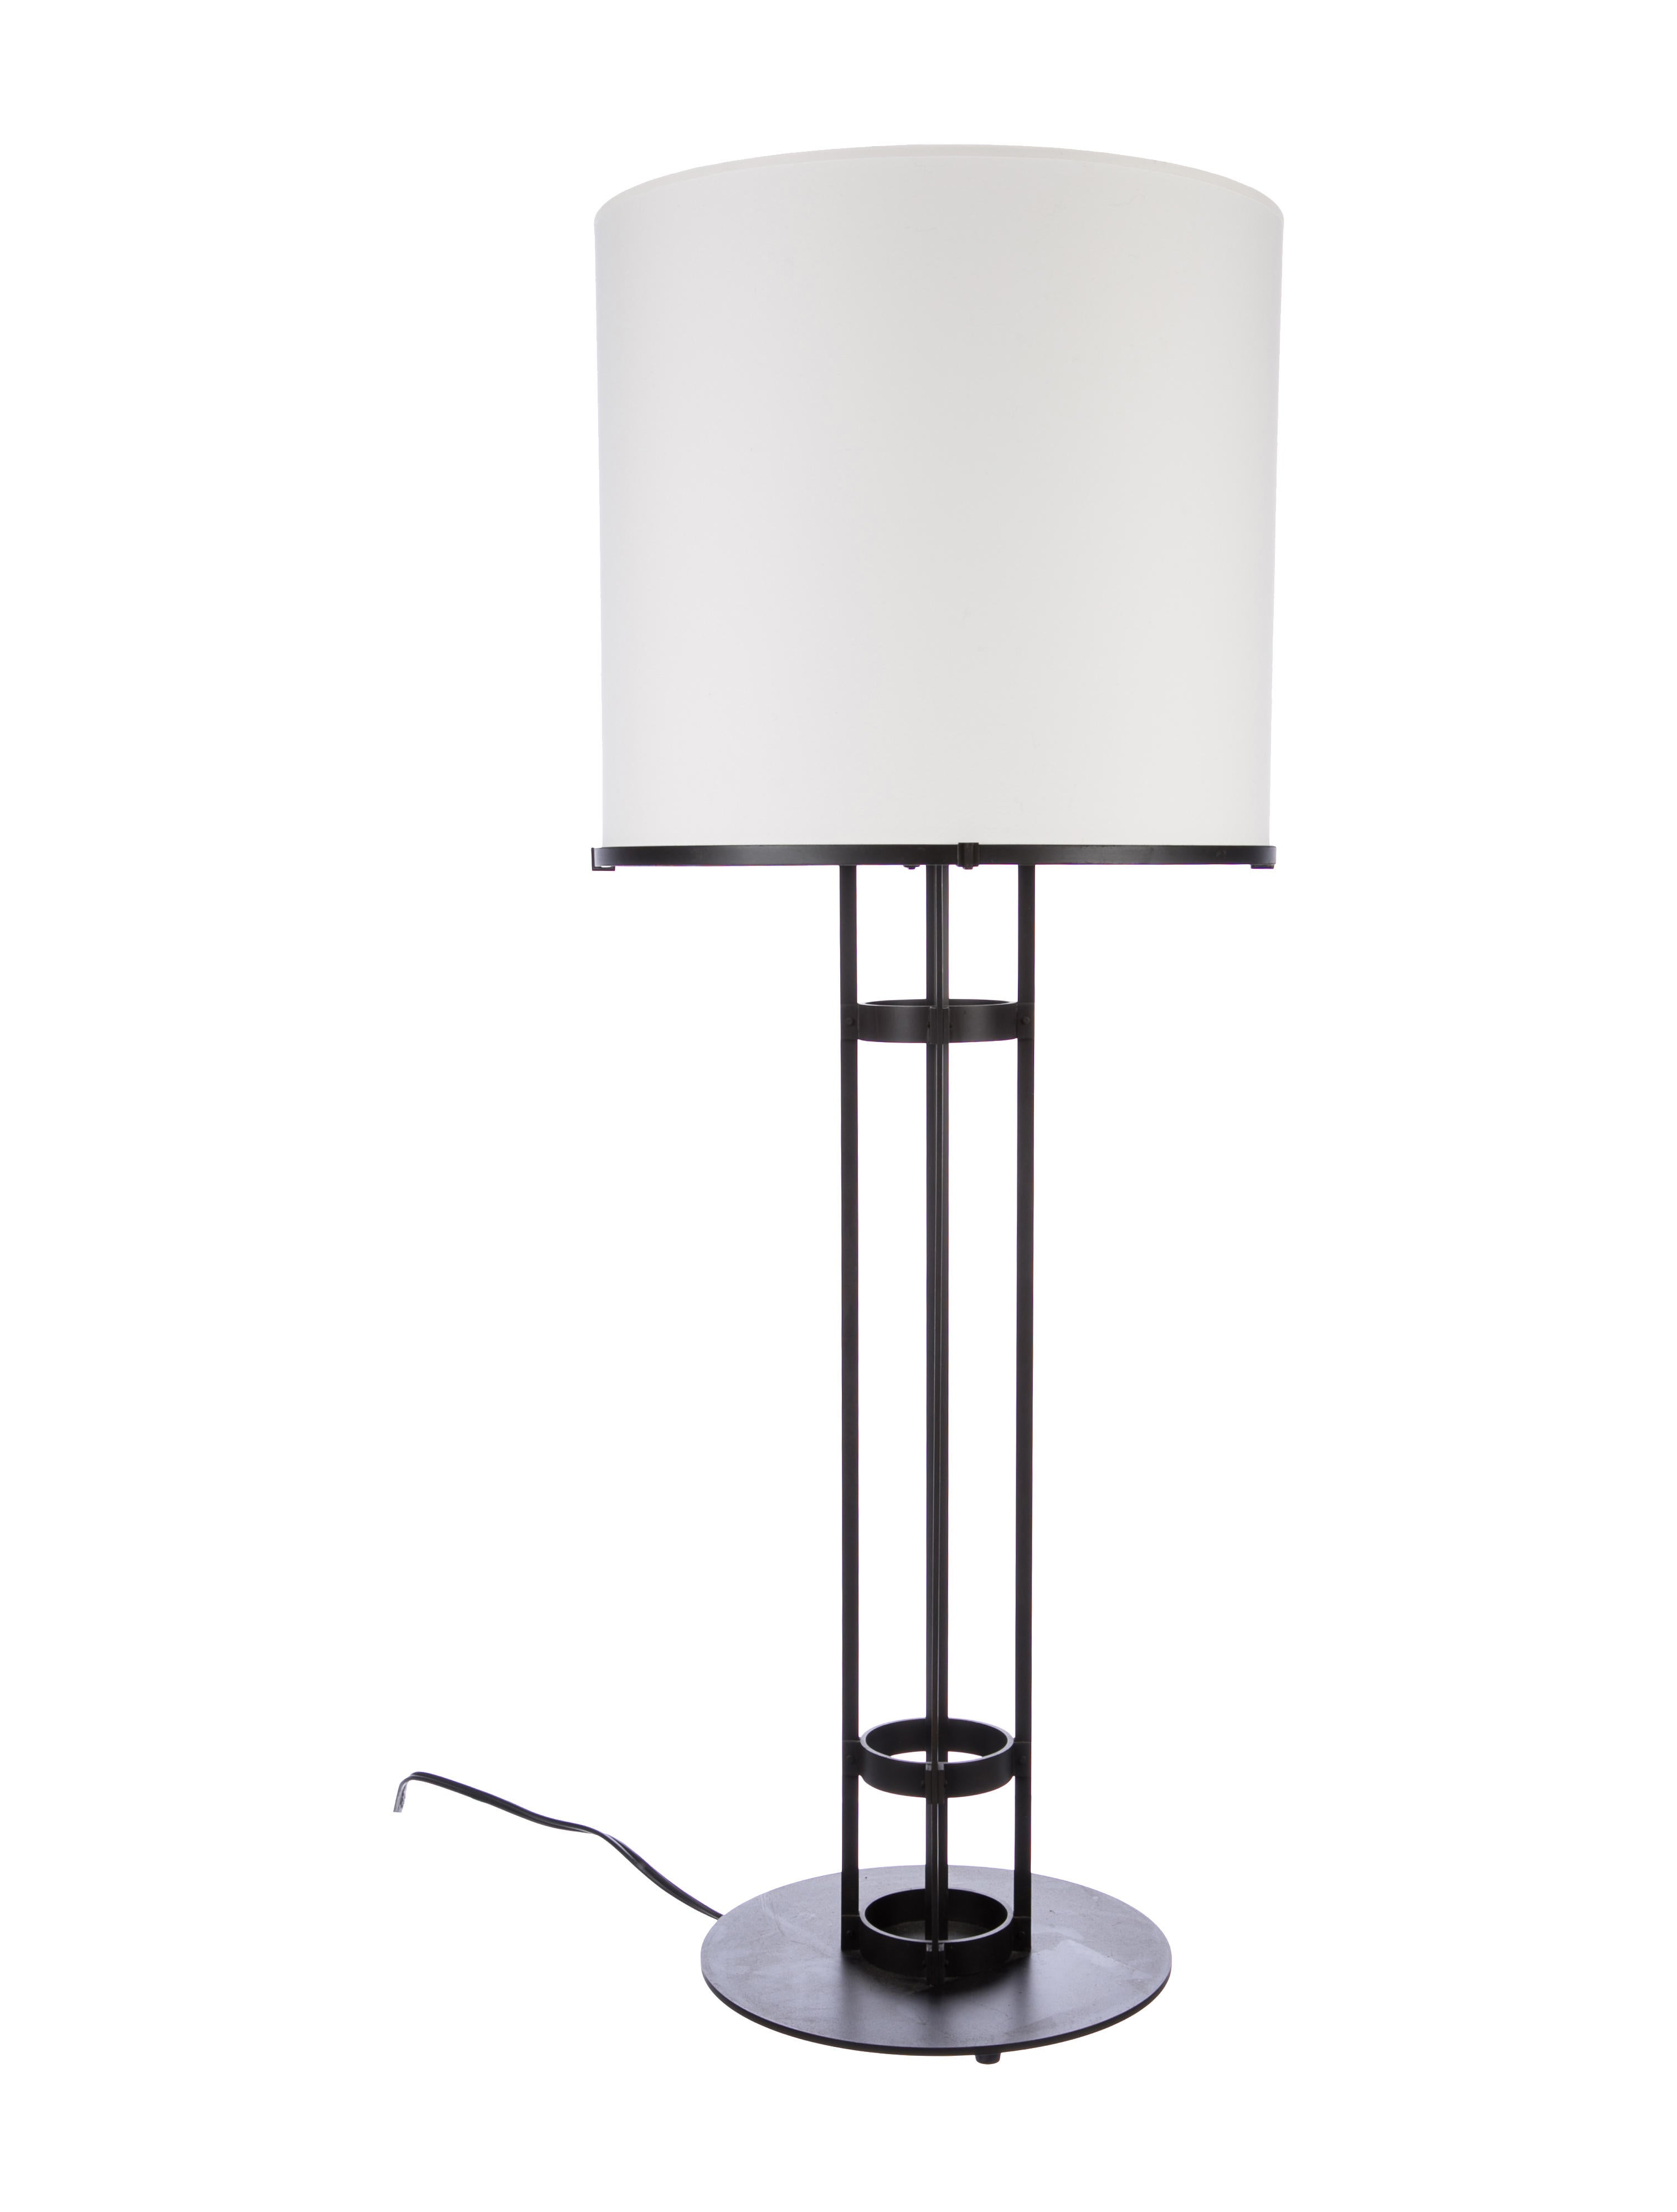 Set Of Two Table Lamps Holly Hunt Set Of Two Solis Betancourt Armature Table Lamps